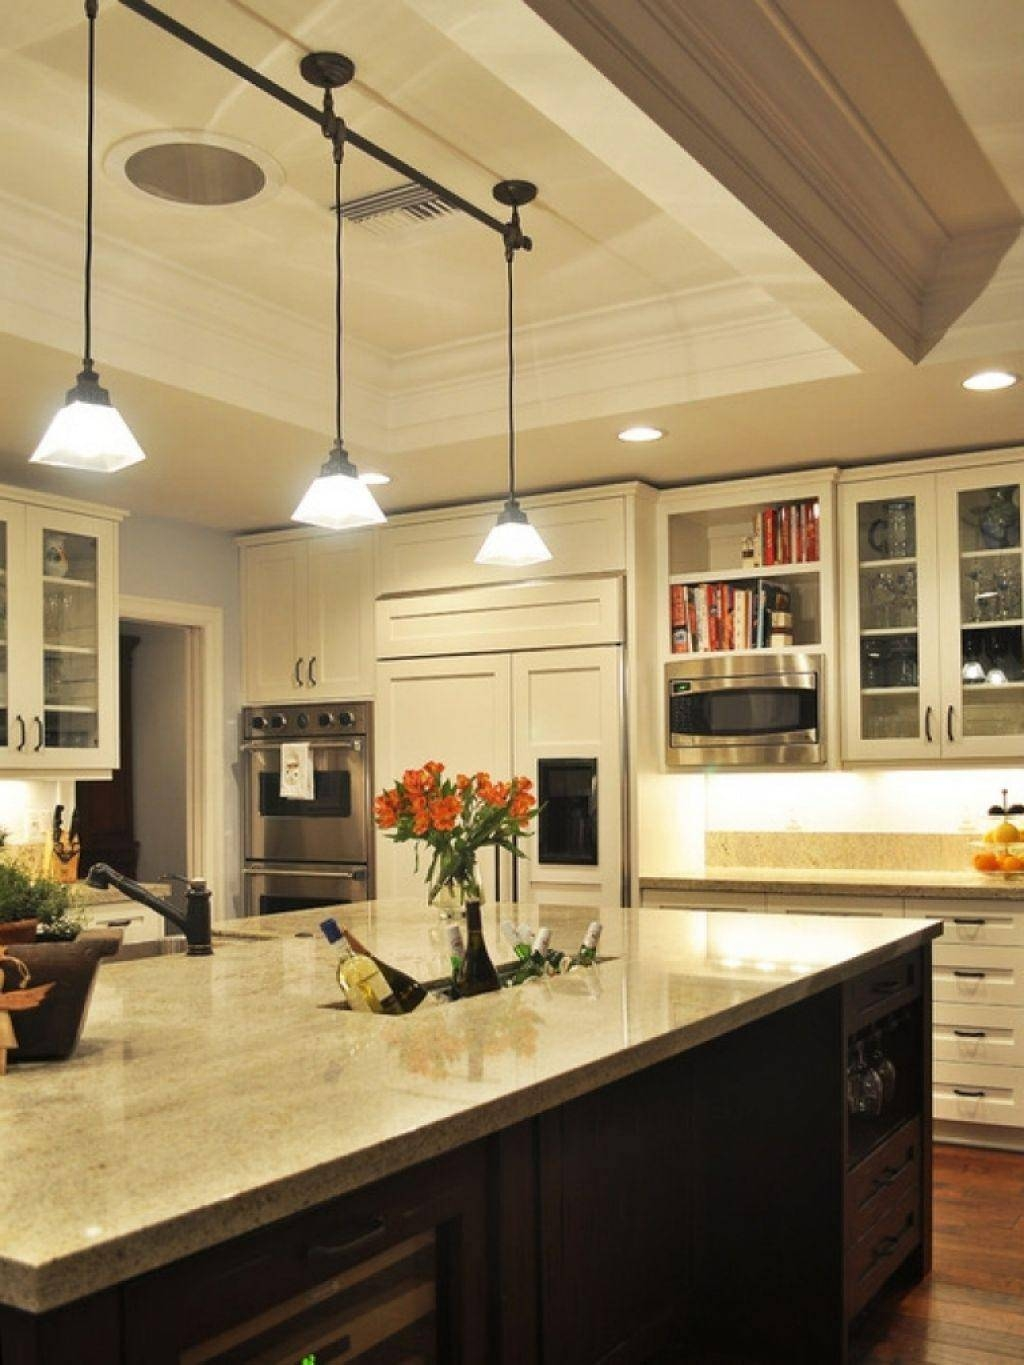 Inspiring Kitchen Island Track Lighting About Interior Decorating With Kitchen Track Pendant Lighting (View 8 of 15)